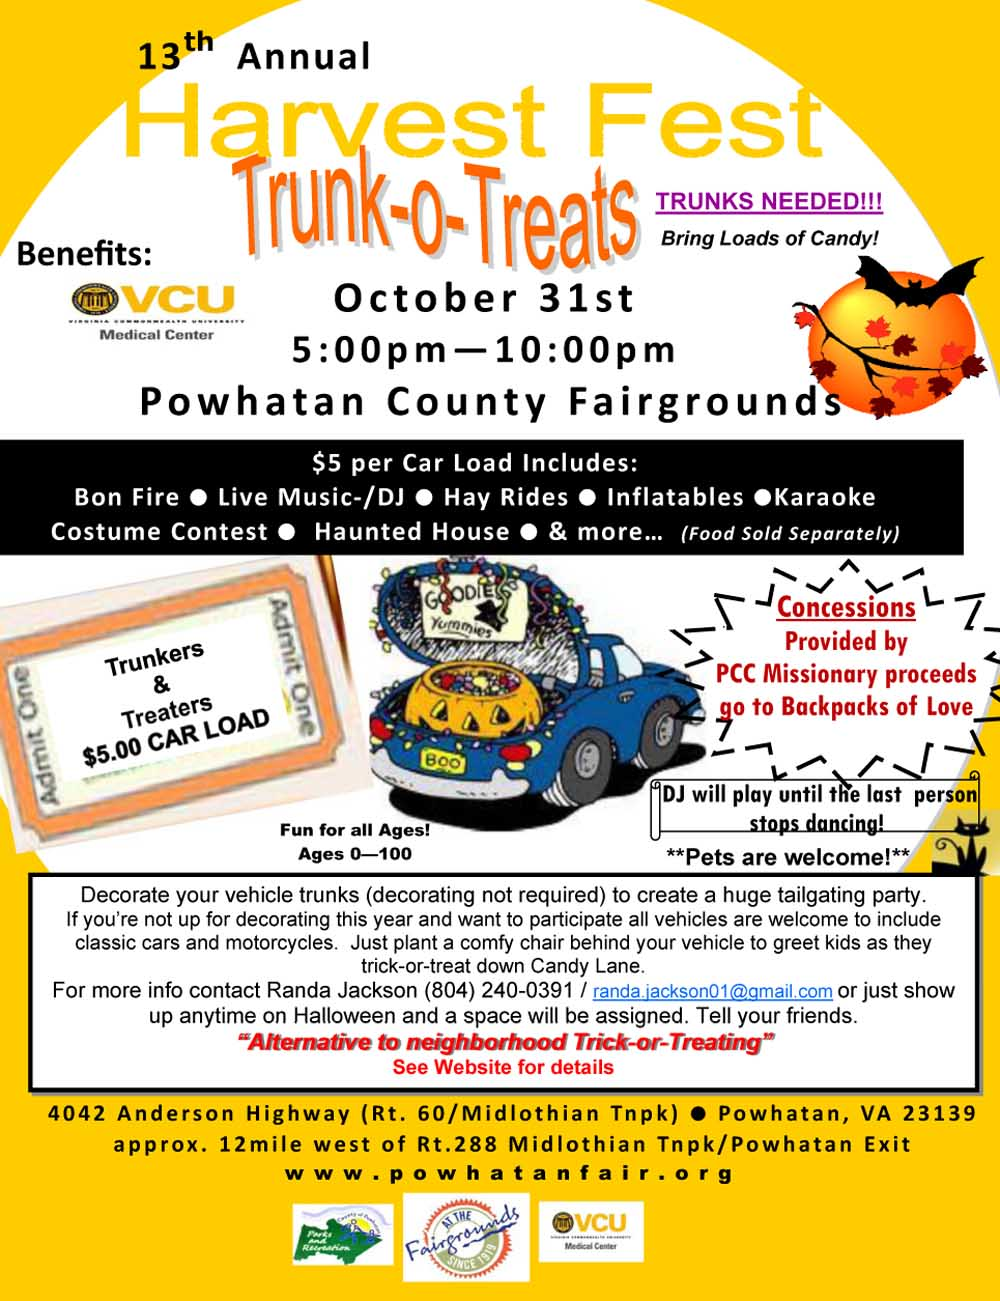 2018 Powhatan Fall Festival - Trunk o Treat Halloween